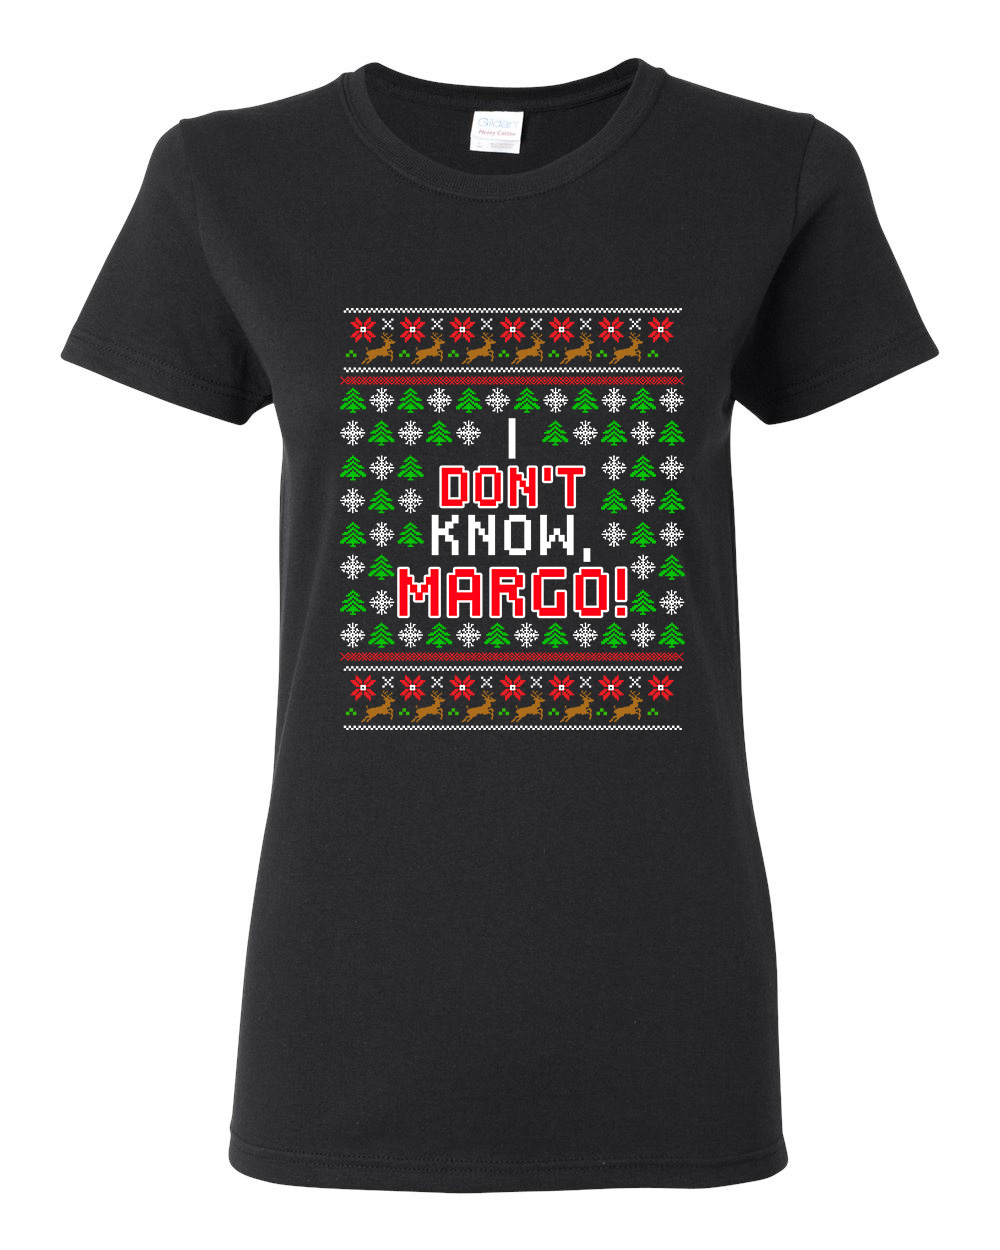 Ladies I Don't Know Margo Vacation Ugly Christmas Gift Funny DT T-Shirt Tee